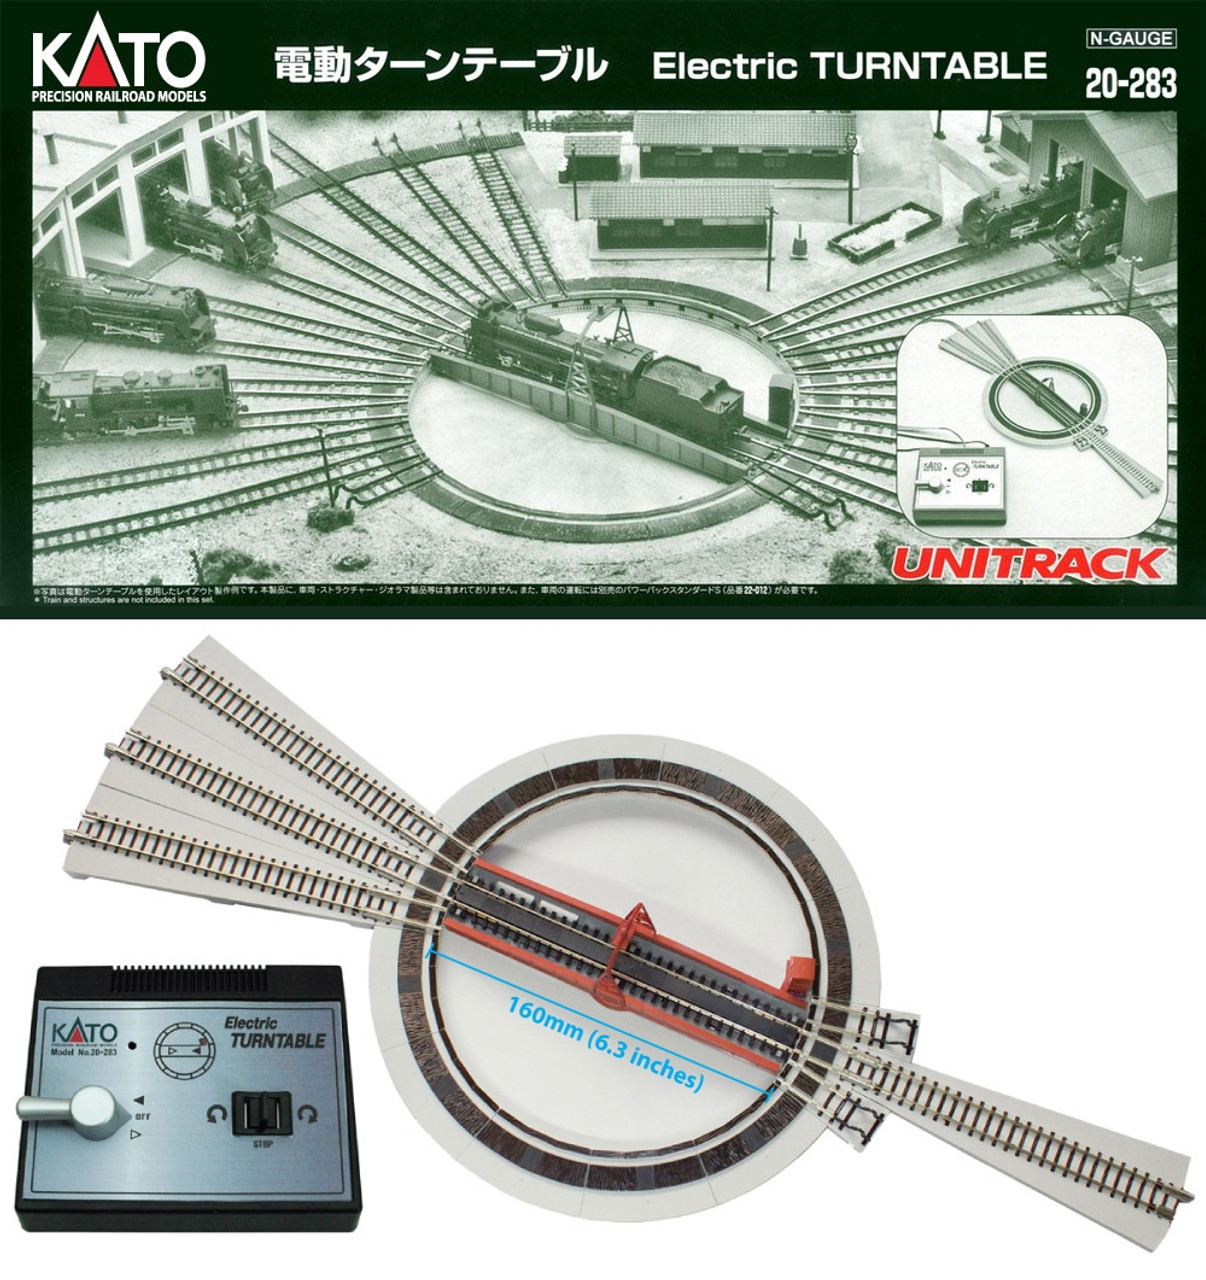 small resolution of kato n 20 283 motorized turntable dcc friendly modeltrainstuff comkato n 20283 motorized turntable